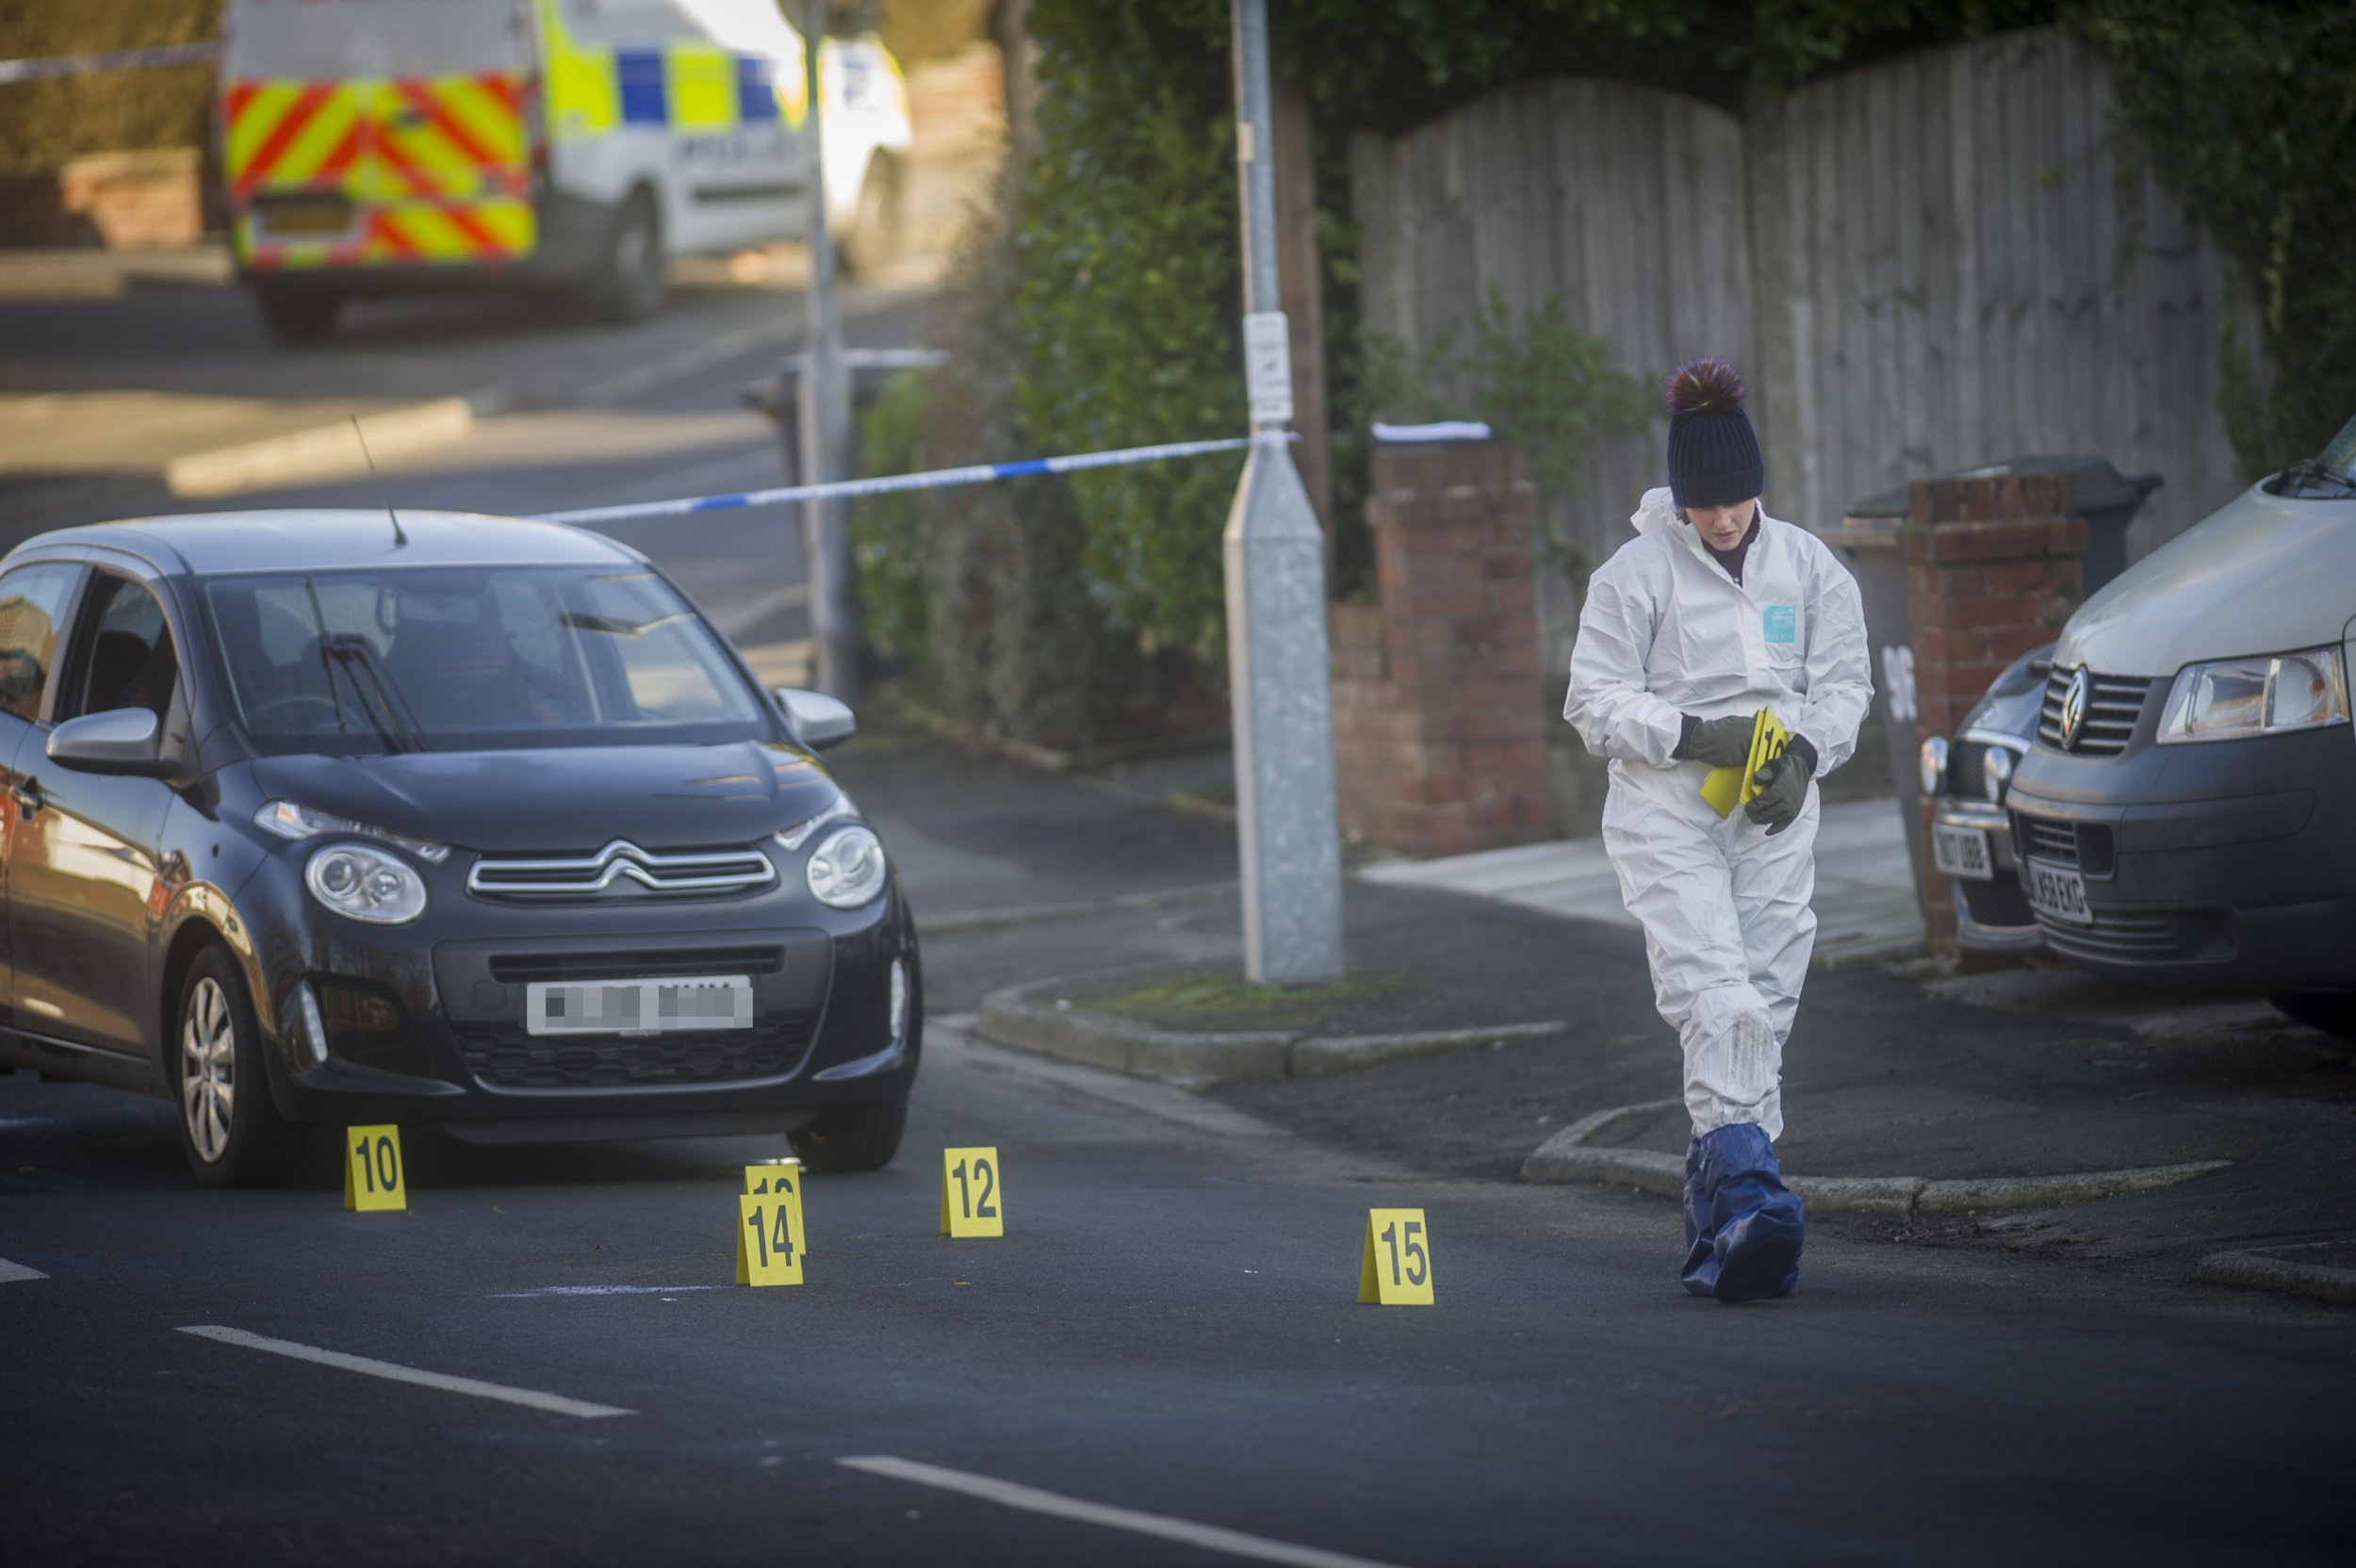 Police scene on Nook Lane Ashton Man fighting for life after being run down as he tried to stop car thieves - police are urgently trying to find vehicle